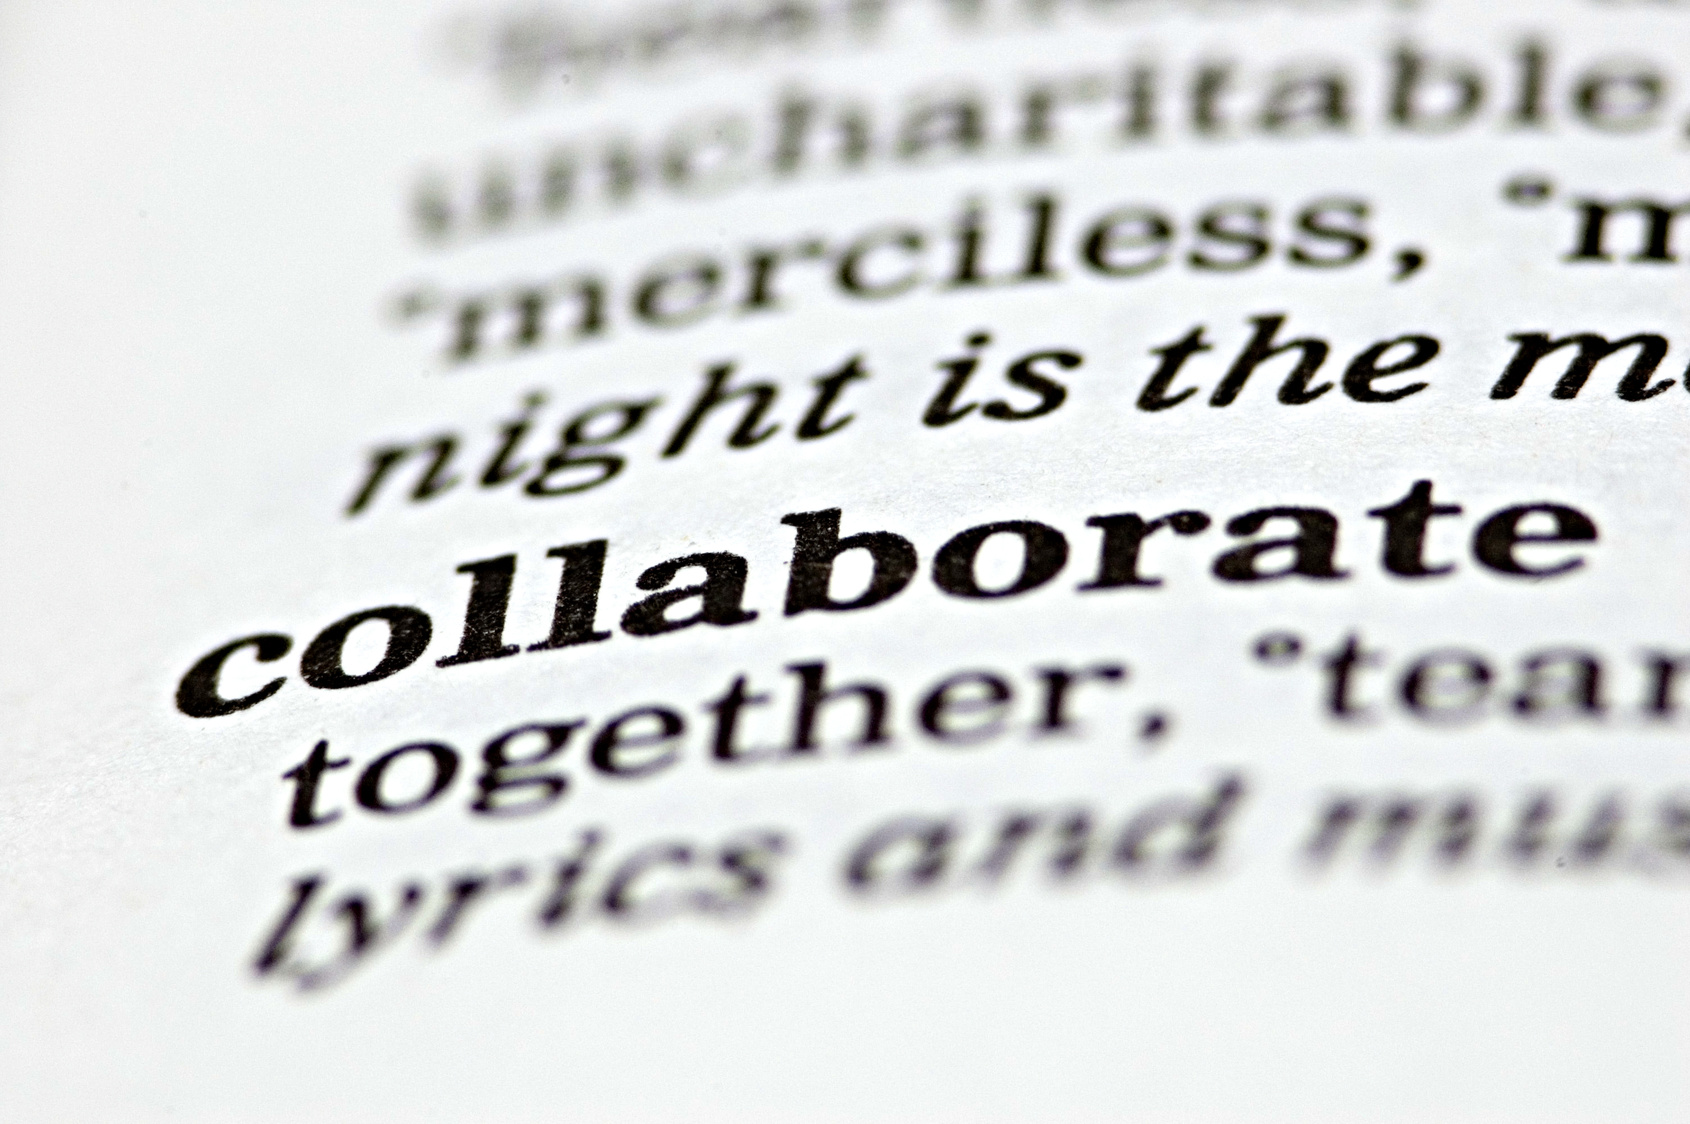 Collaborate Here The Makerspace